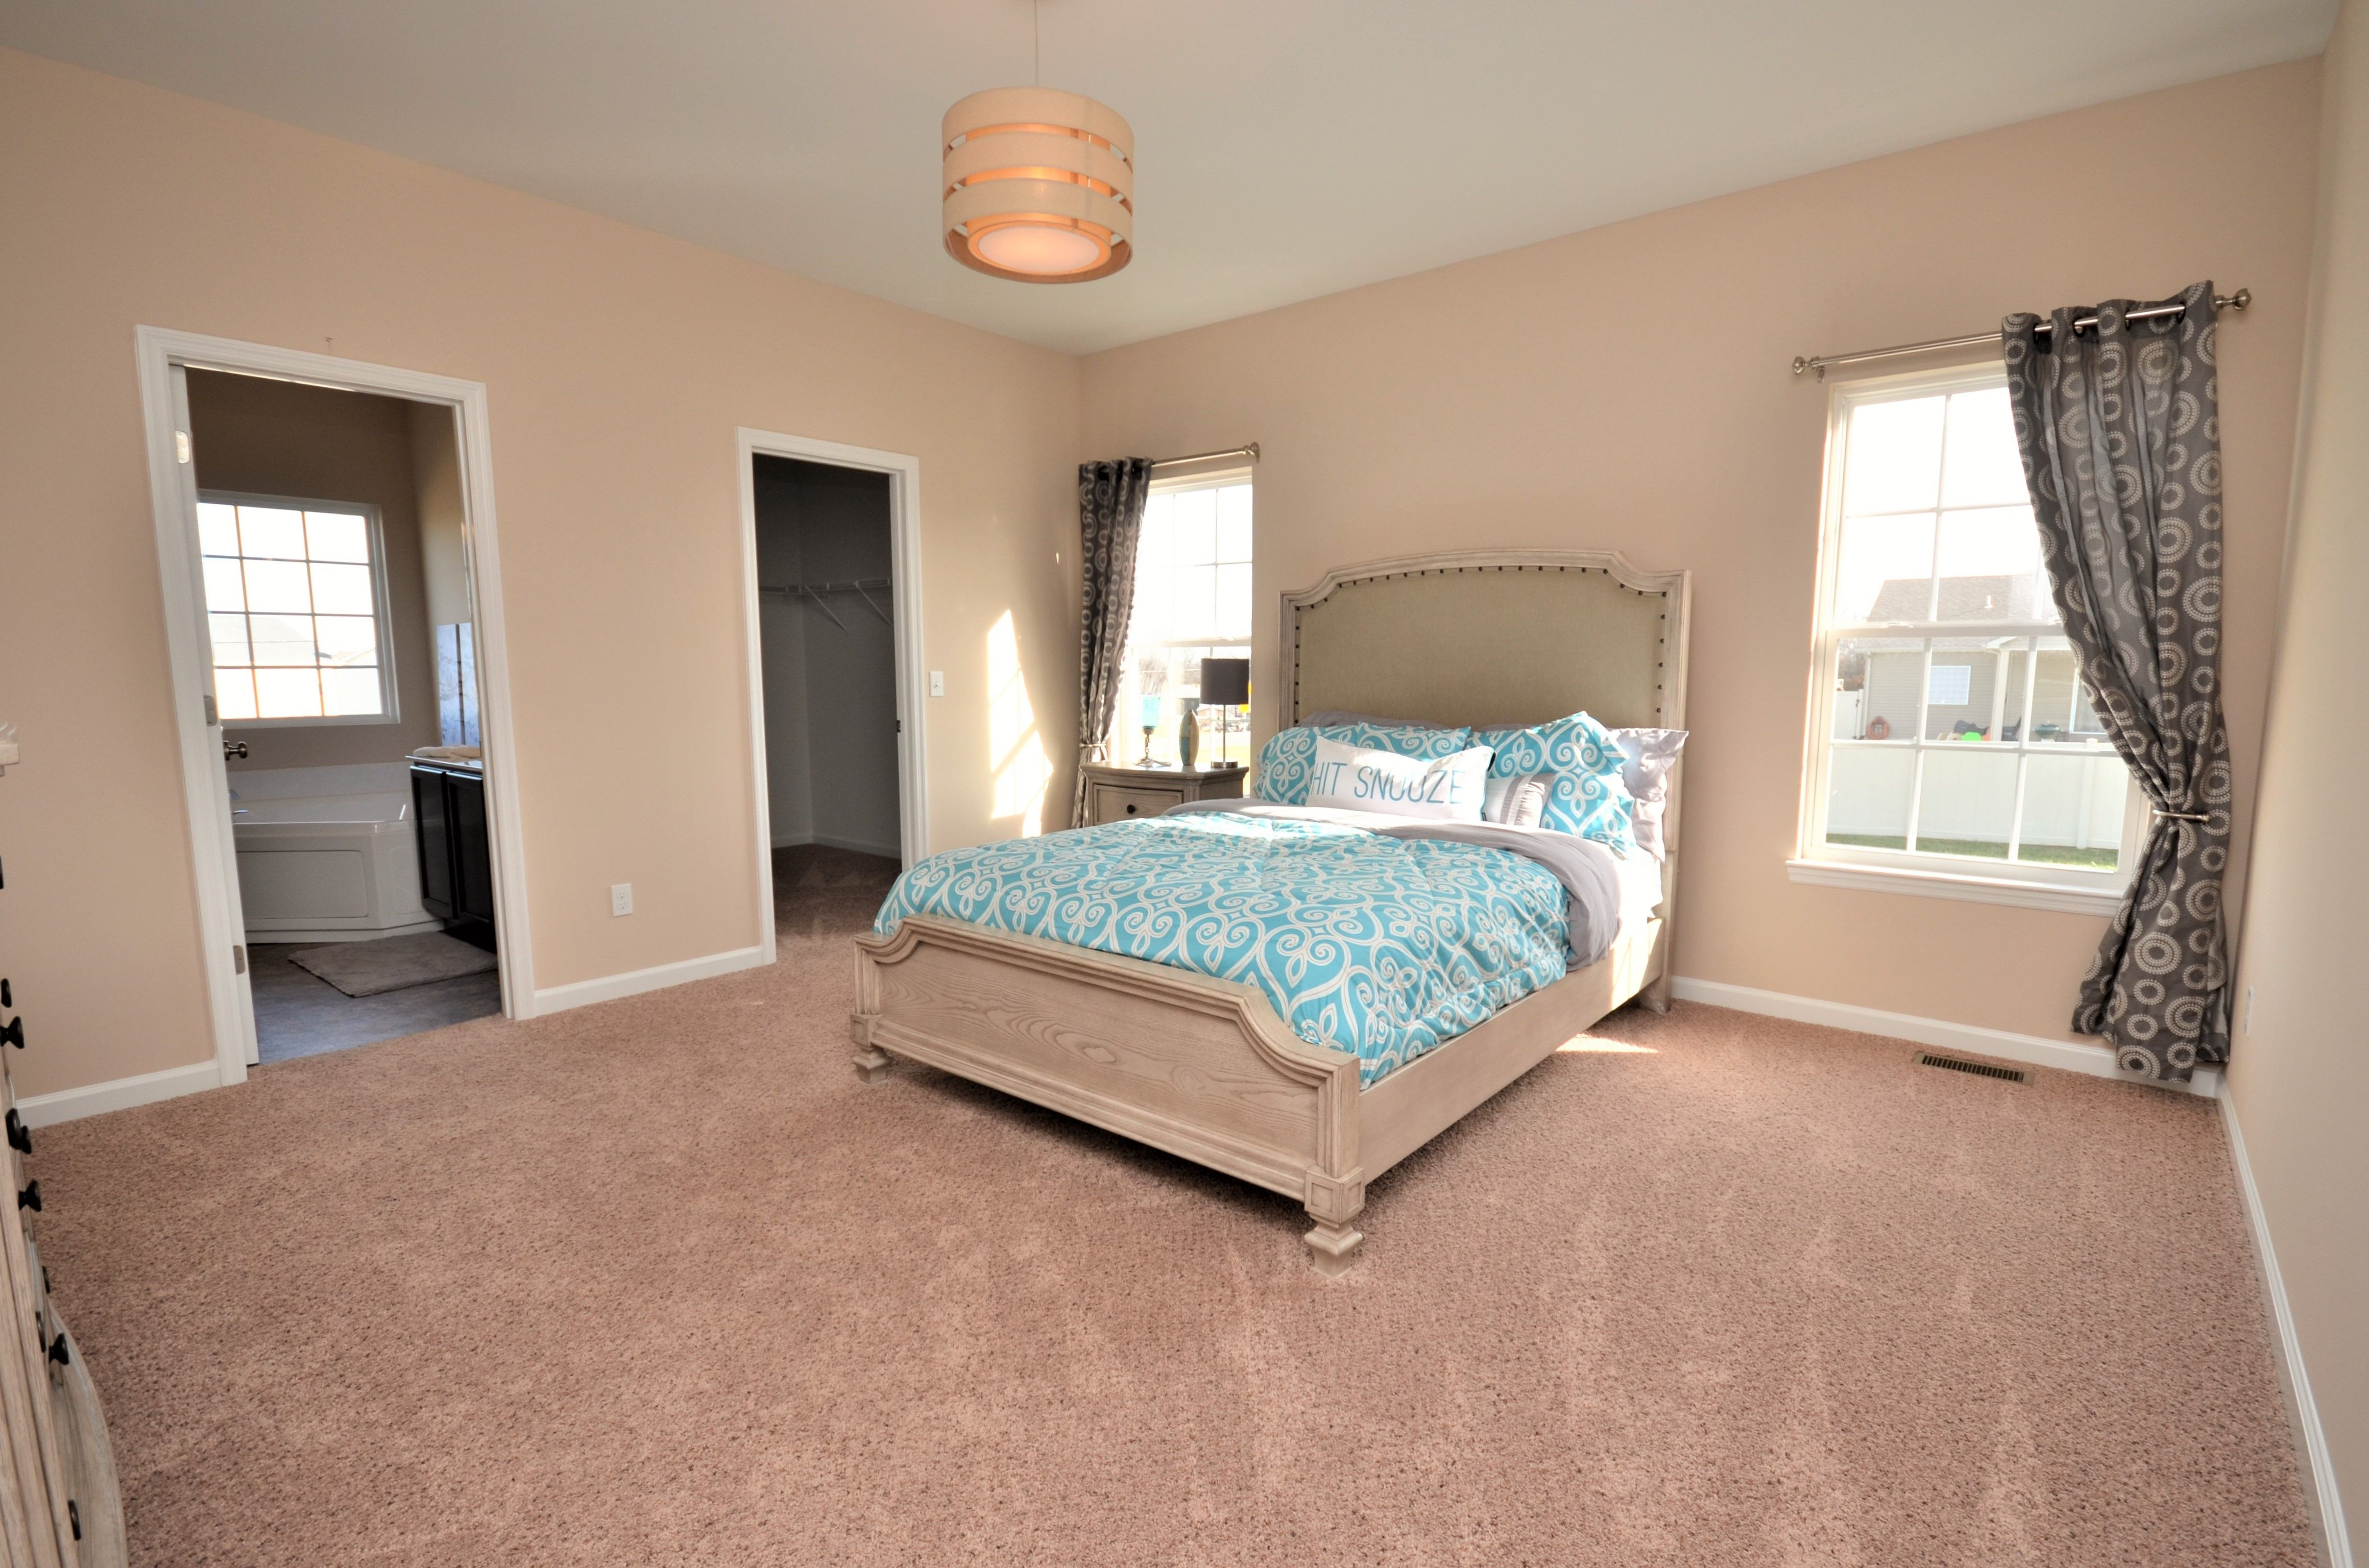 Bedroom featured in The Maplewood By Cannon Builders, Inc.  in St. Louis, MO